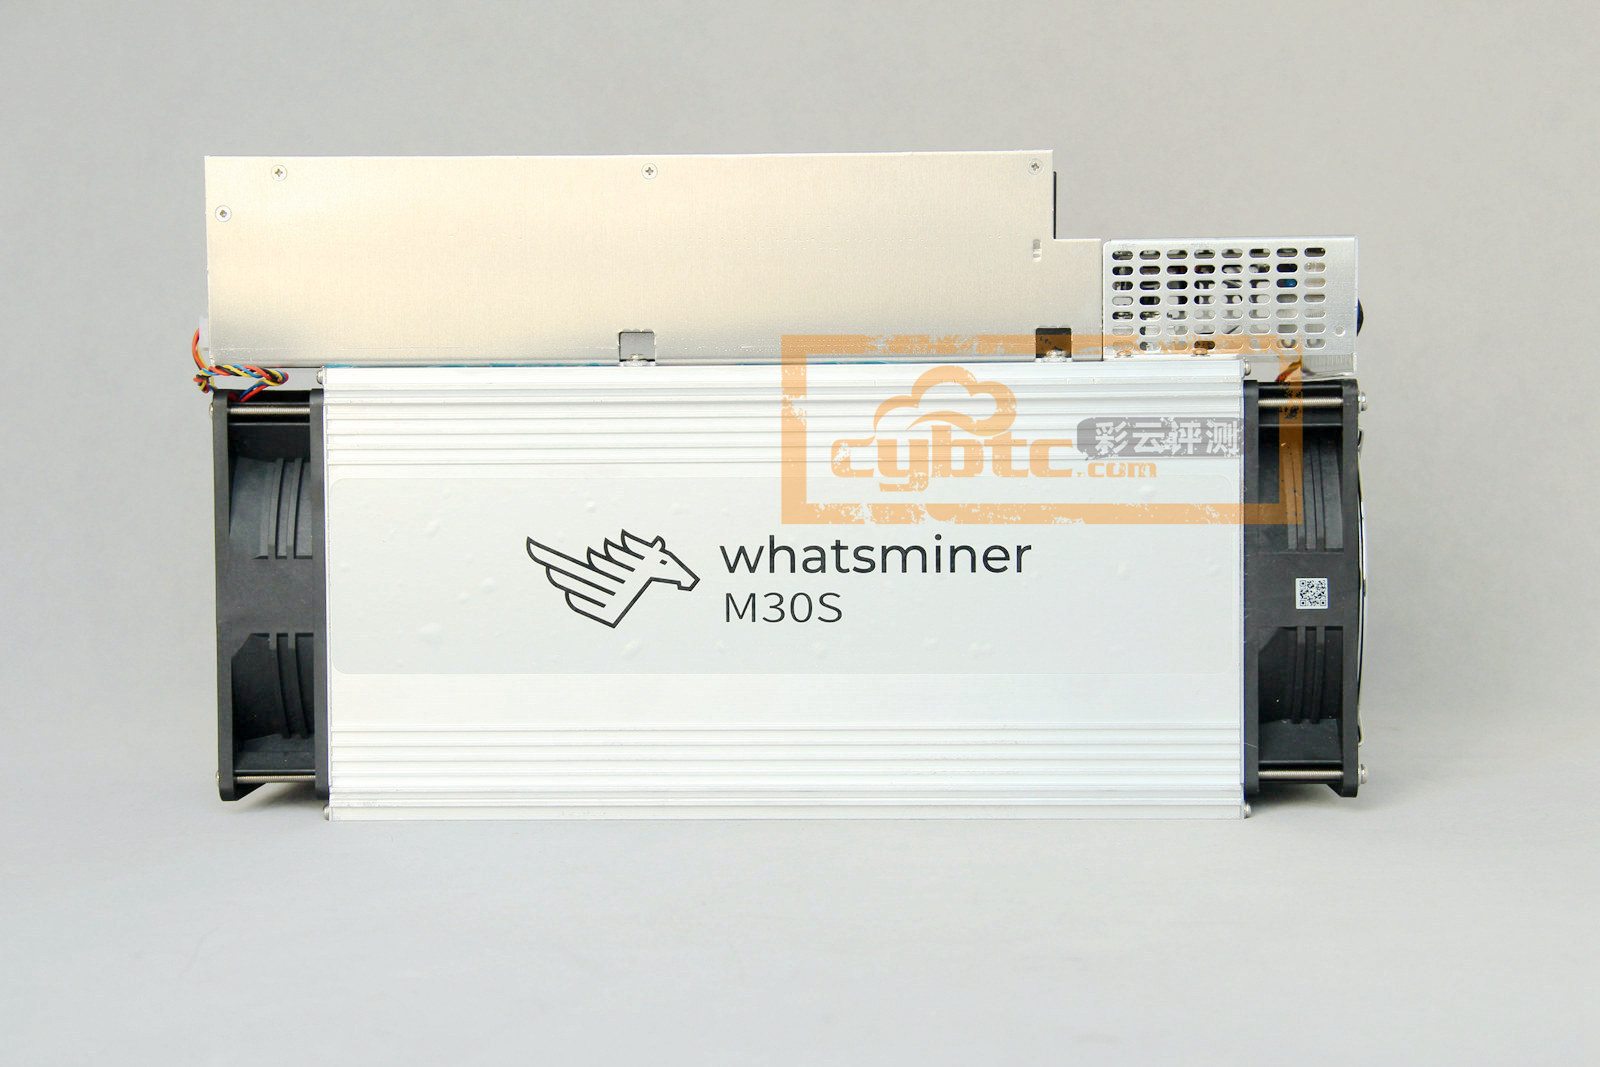 asic bitcoin sha256 whatsminer_m30s